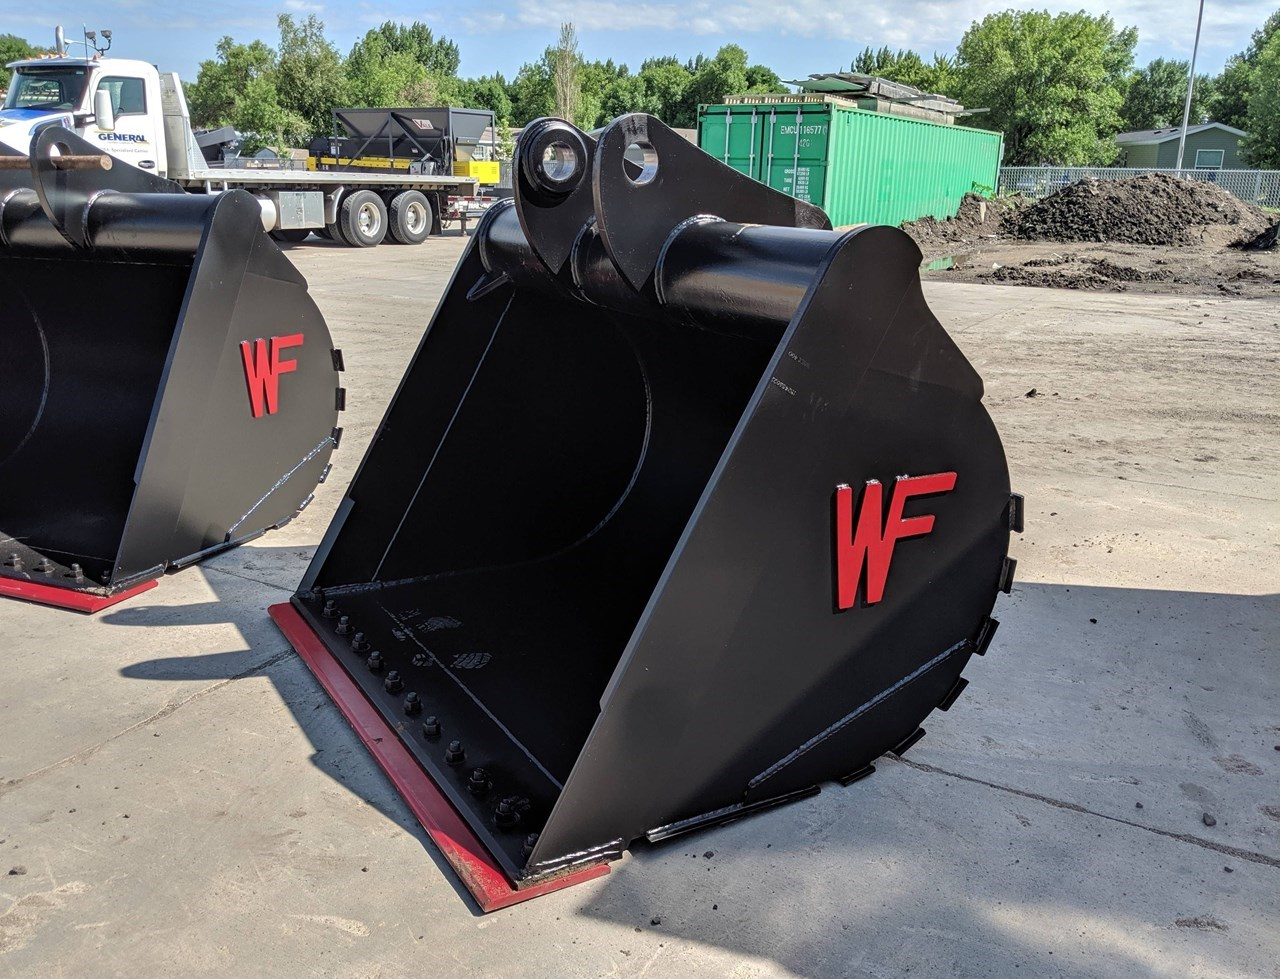 2019 WAHPETON FABRICATION PC490D72 Excavator Bucket For Sale